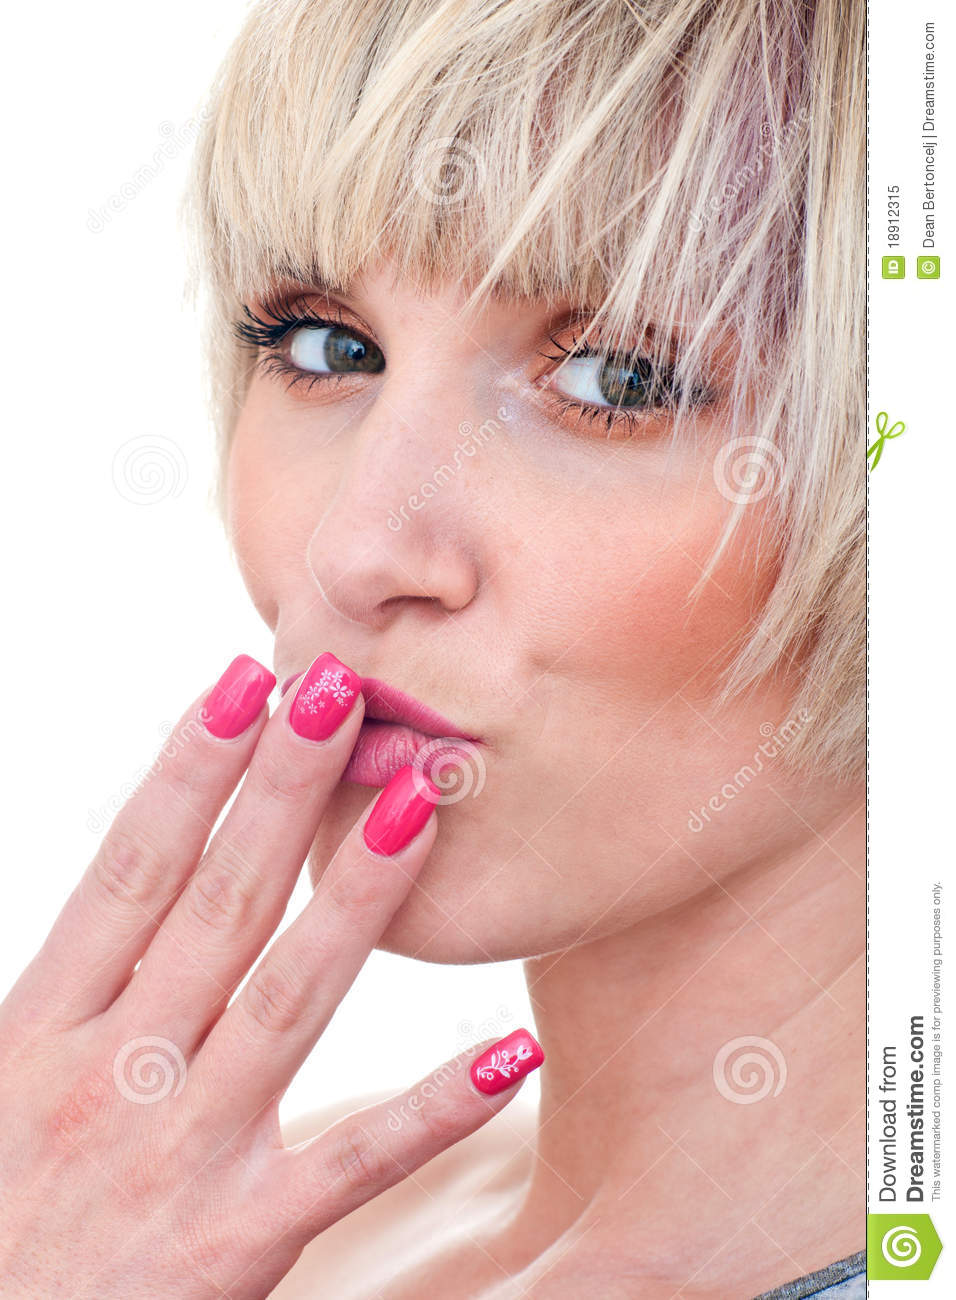 Woman Beauty Portrait With Manicured Nails Stock Image